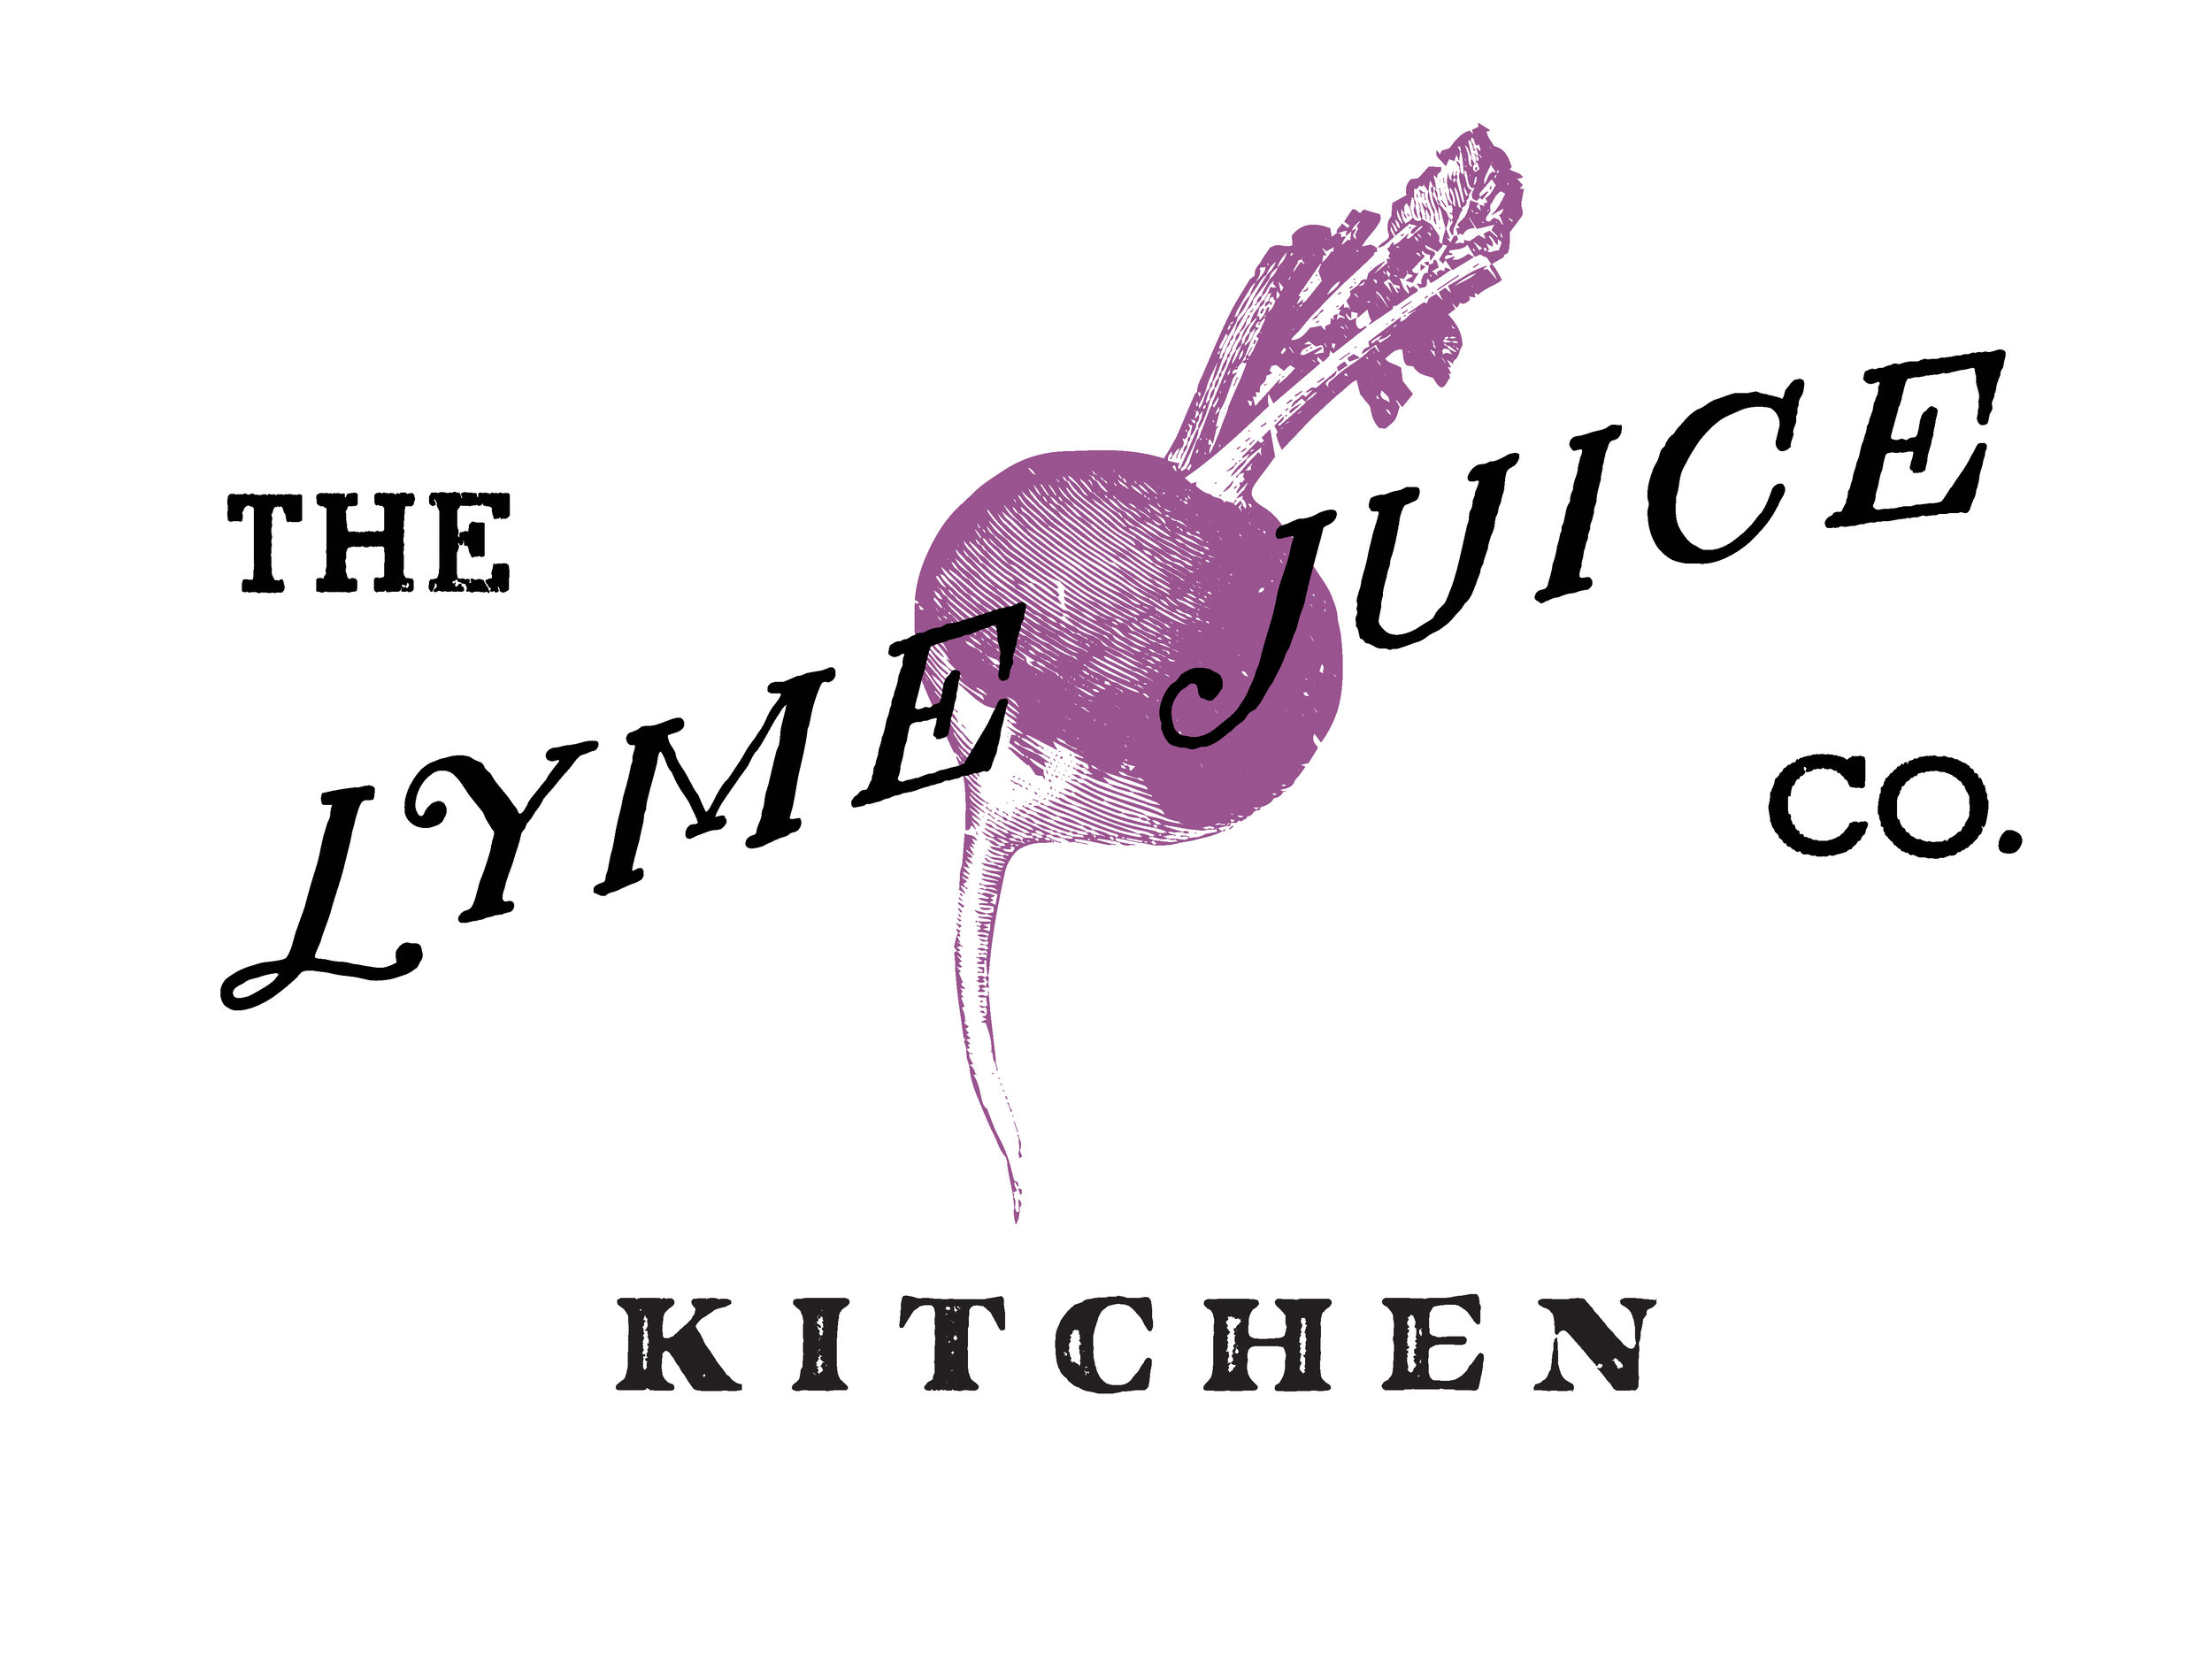 LymeJuice_kitchenturnip.jpg